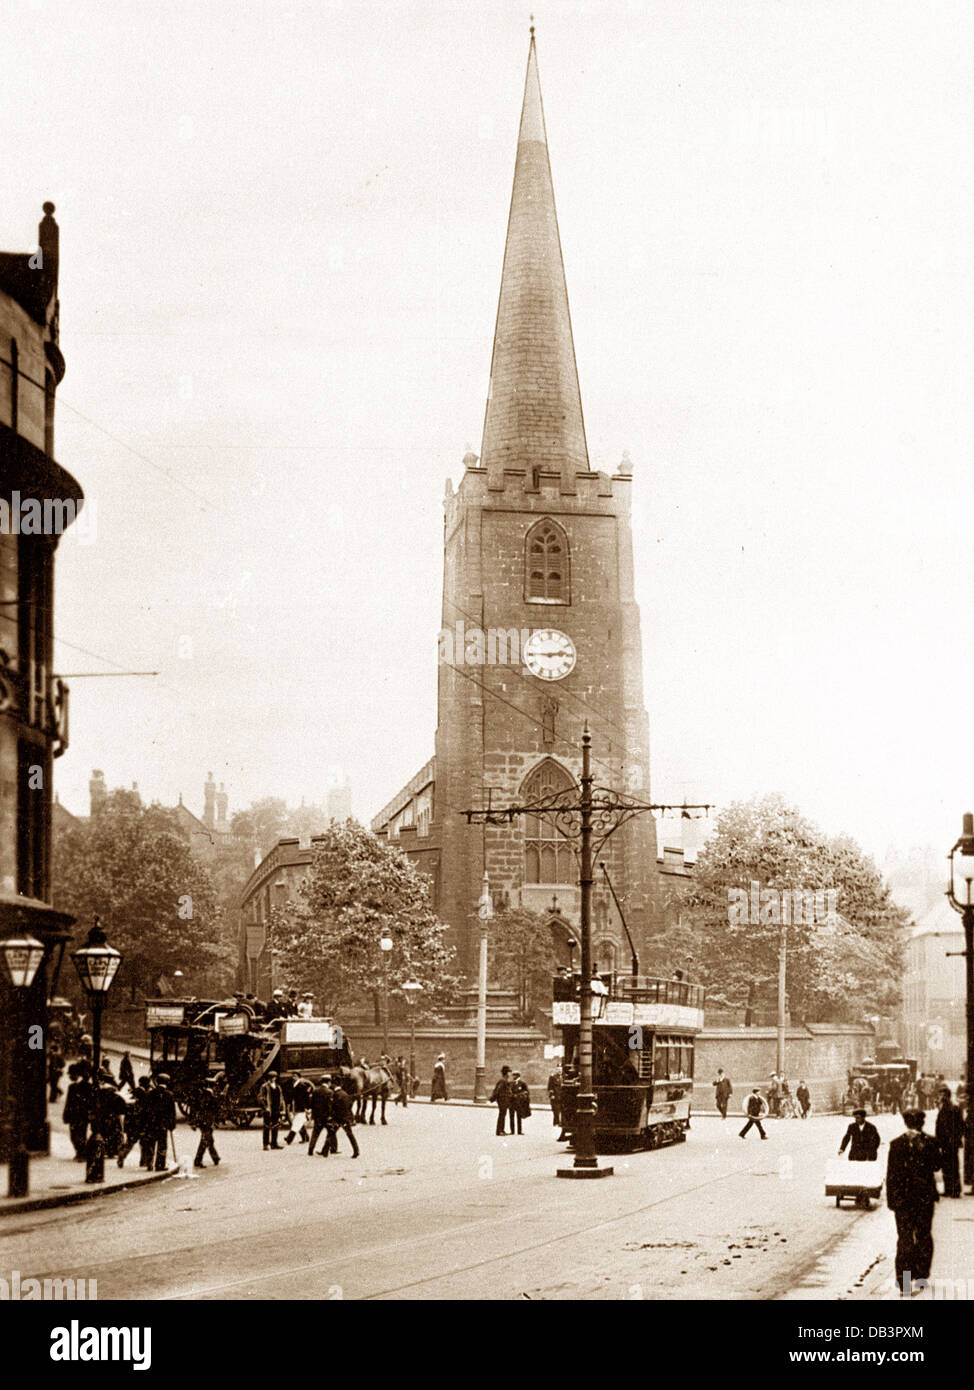 Nottingham St. Peter's Square early 1900s - Stock Image